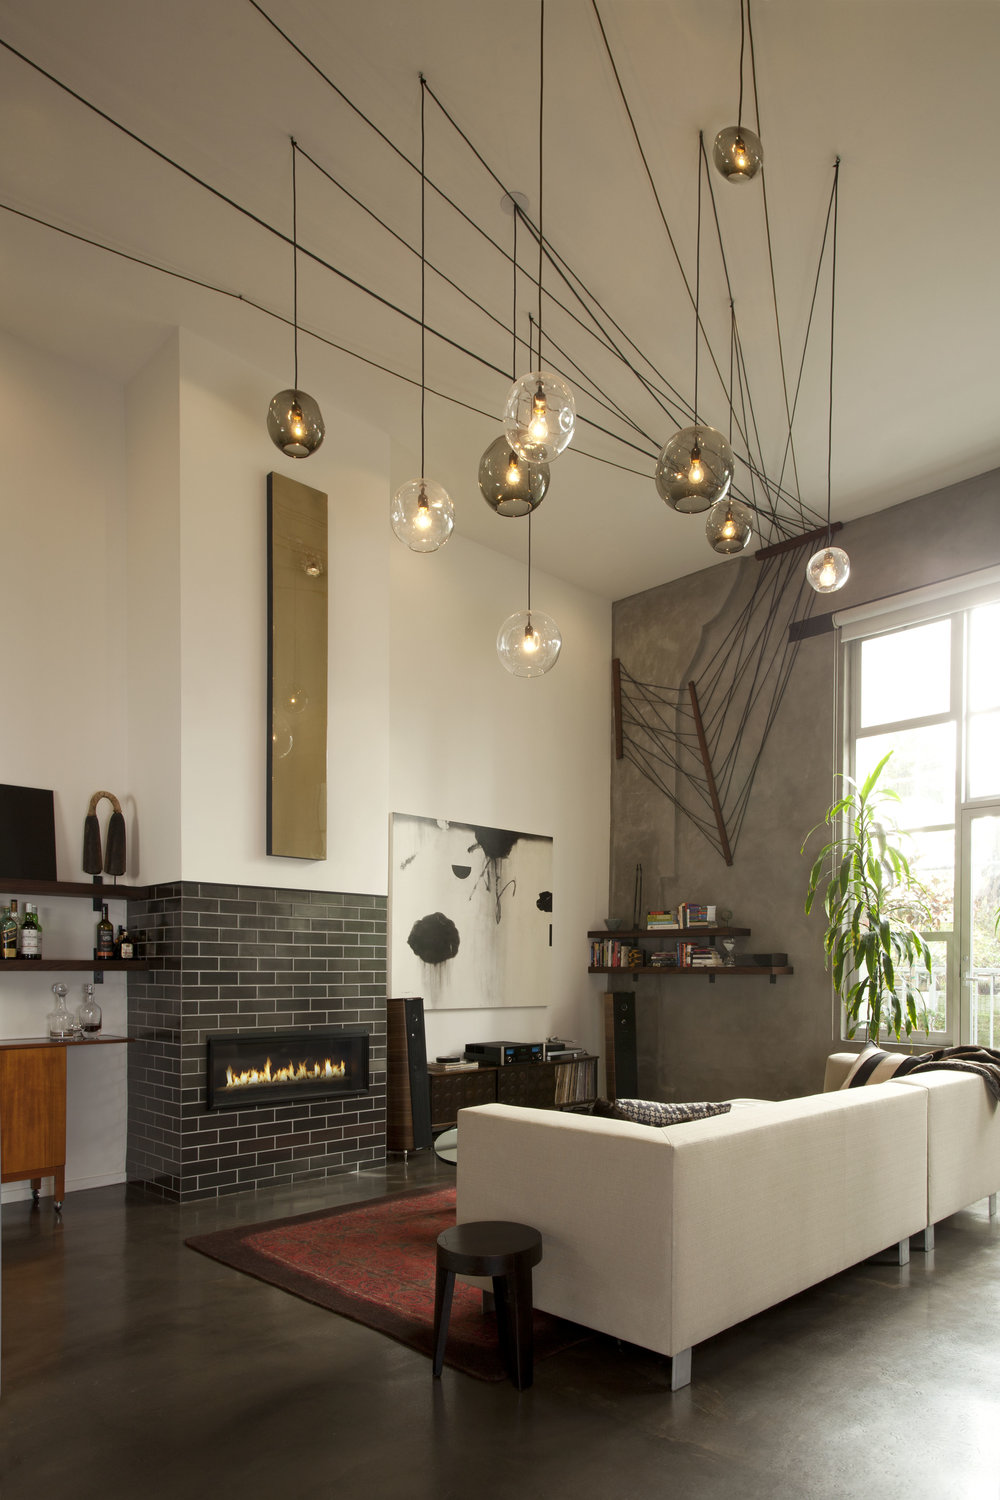 Tall ceilings warmed by custom light fixture inspired by remaining curtain pulley system.